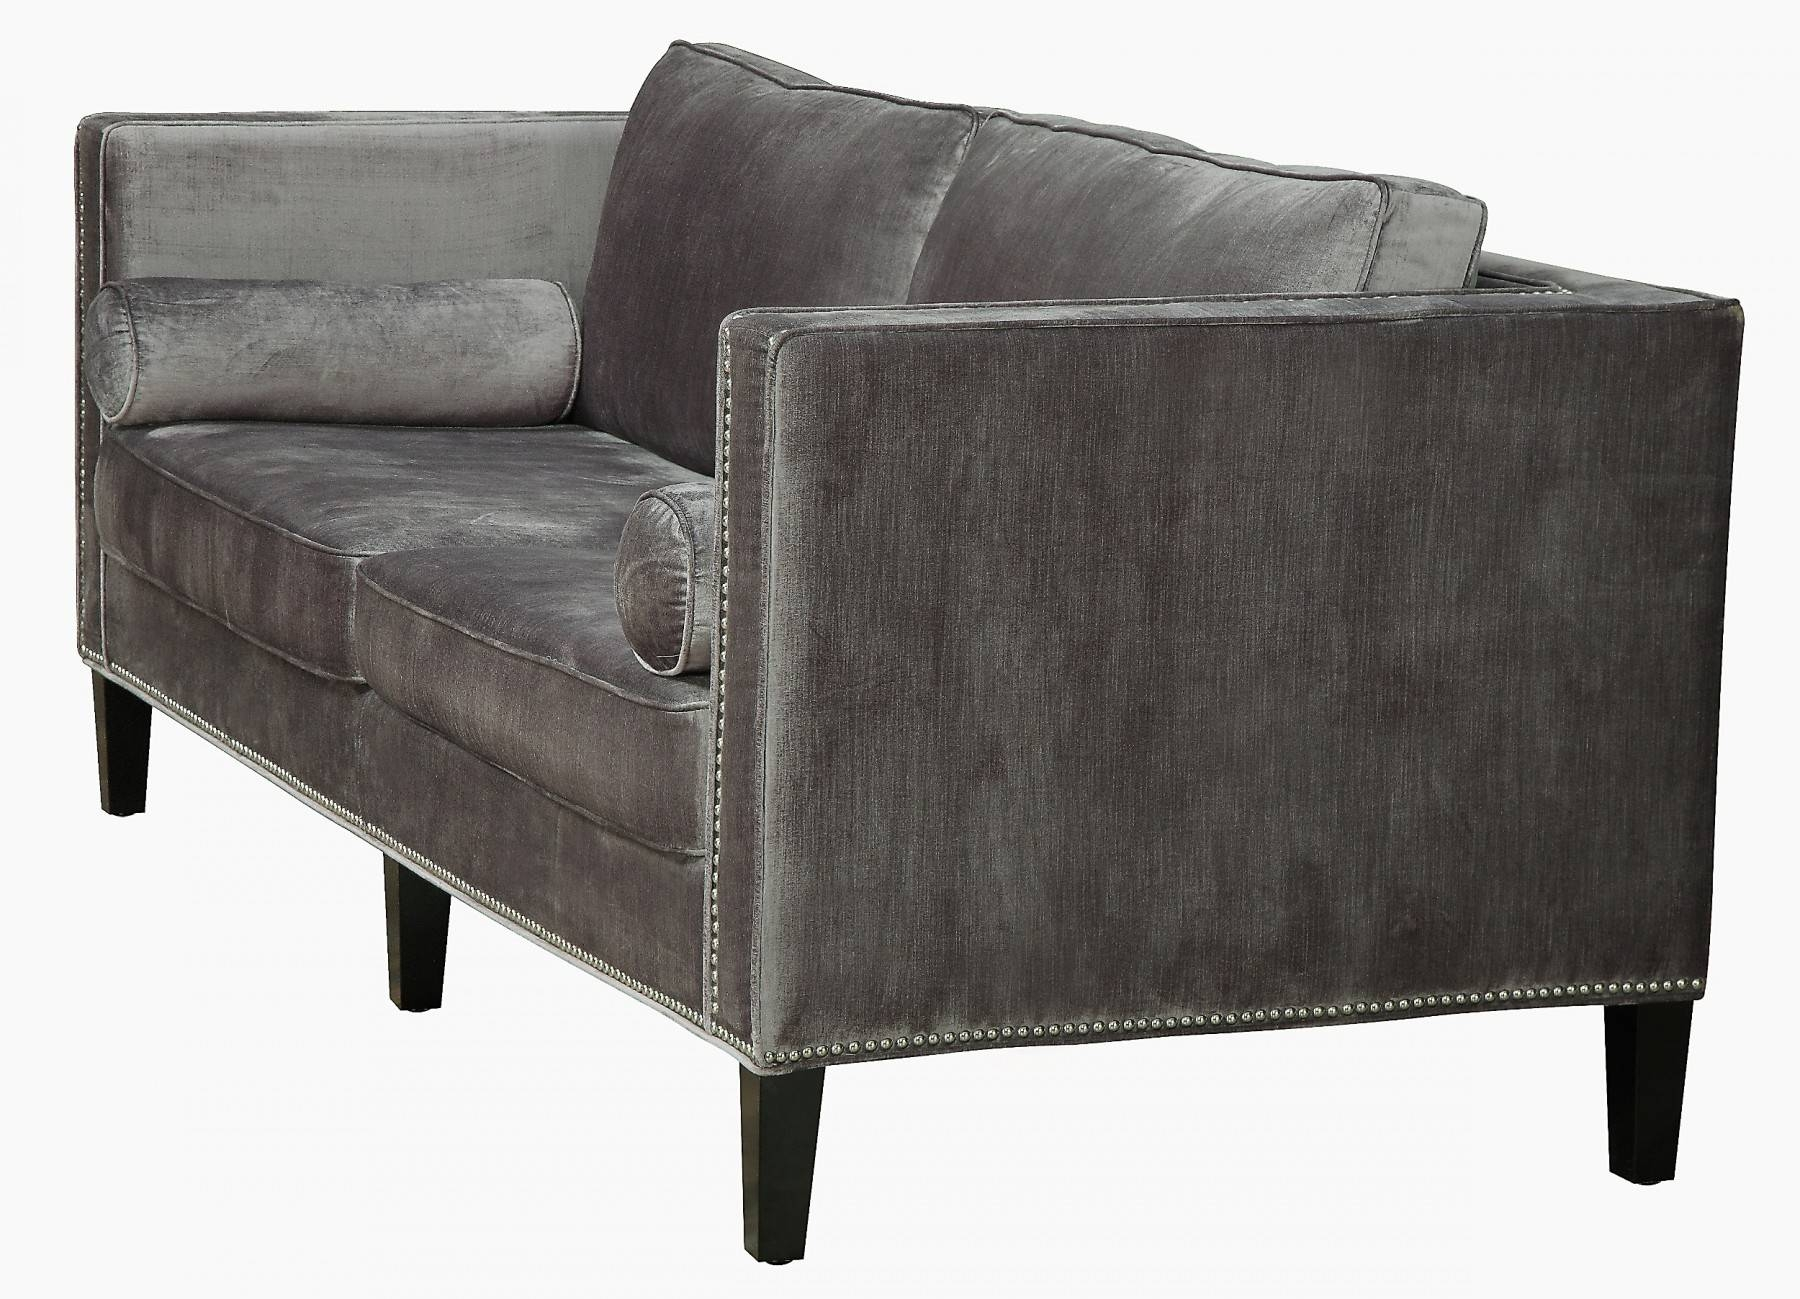 Cooper Velvet Sofatov Furniture Buy Online At Best Price - Sohomod within Black Velvet Sofas (Image 6 of 30)